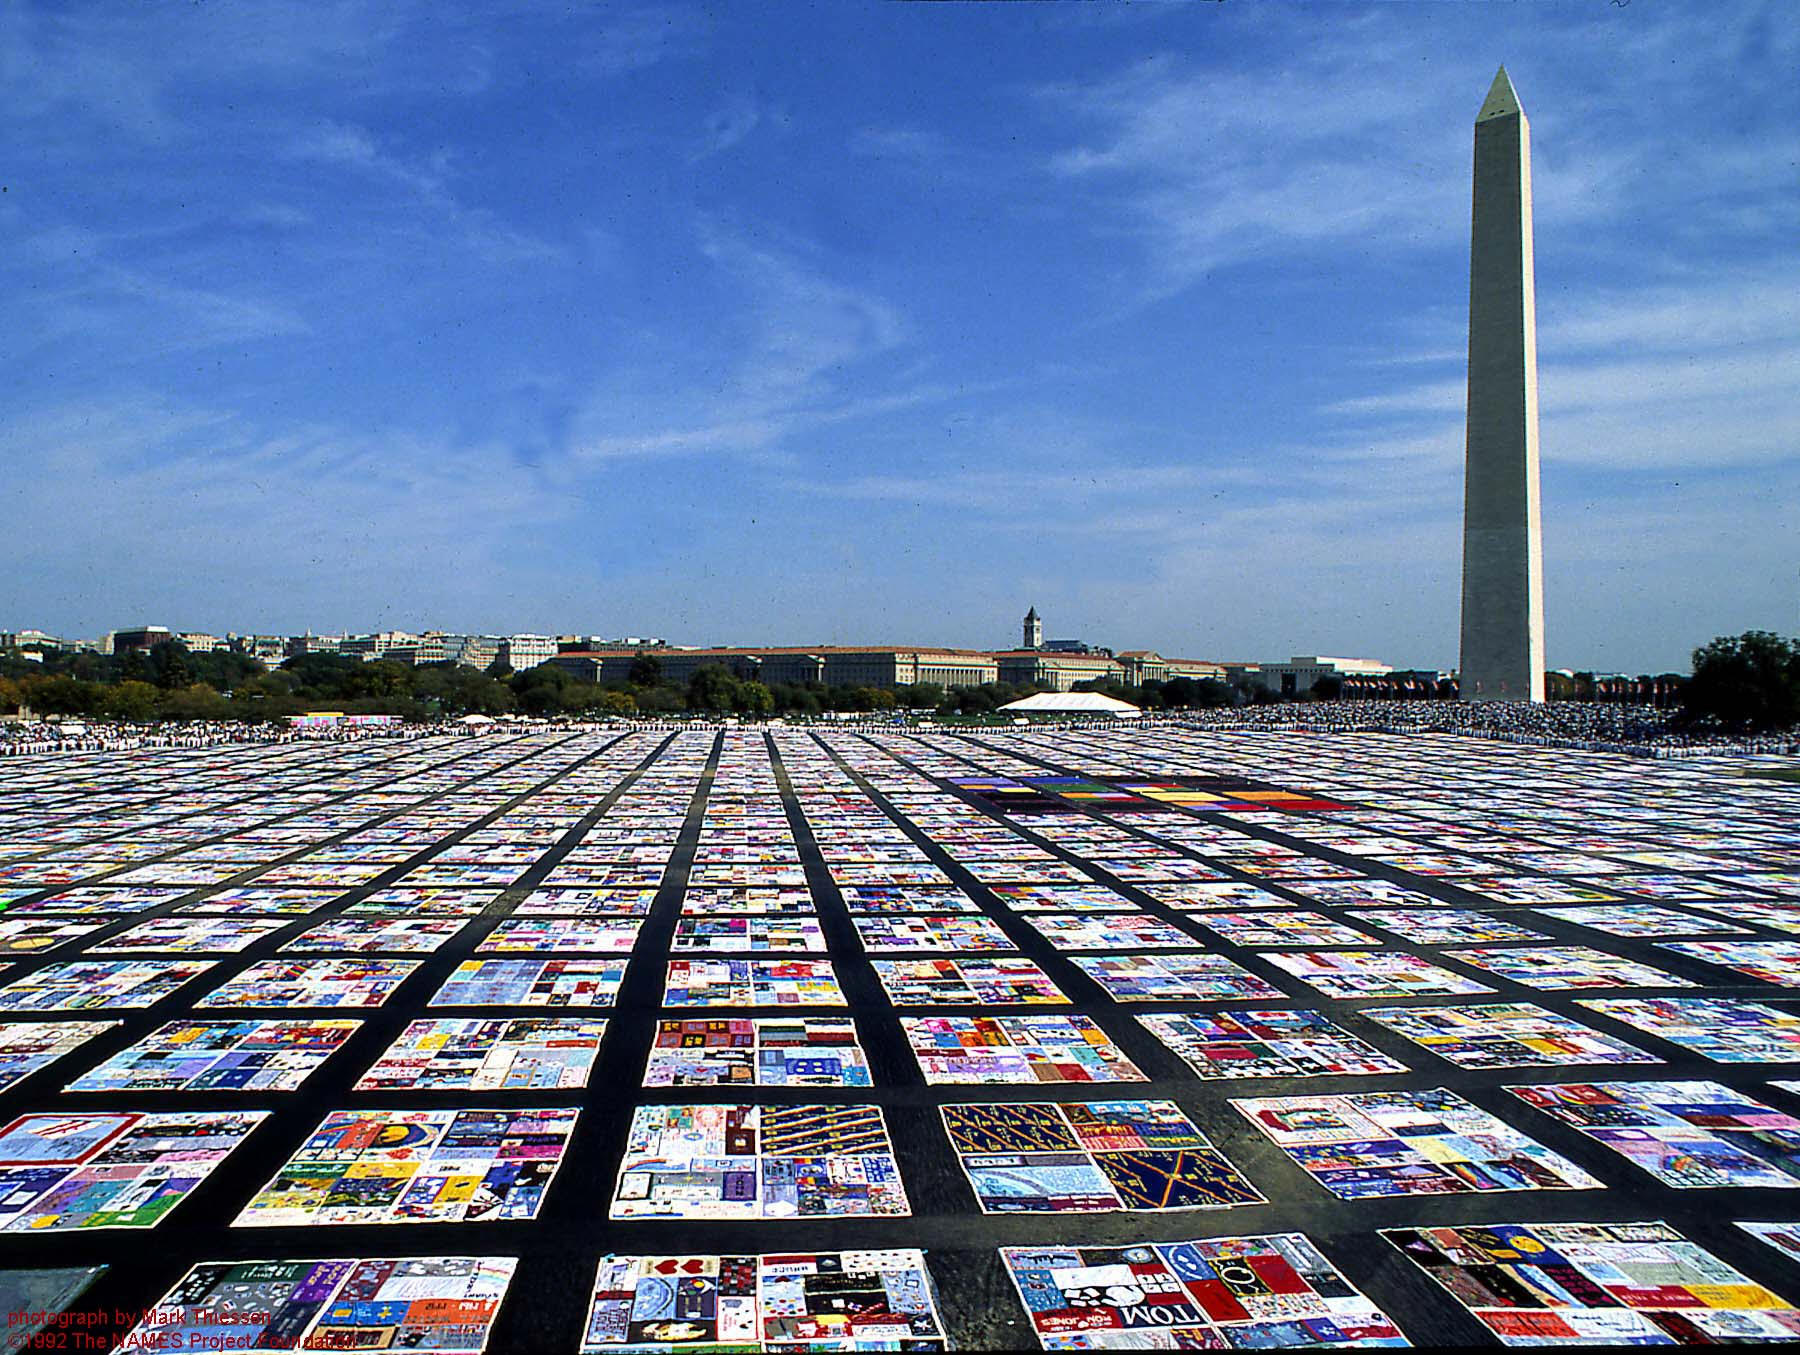 Photograph of the AIDS Memorial Quilt laid out beneath the Washington Monument.